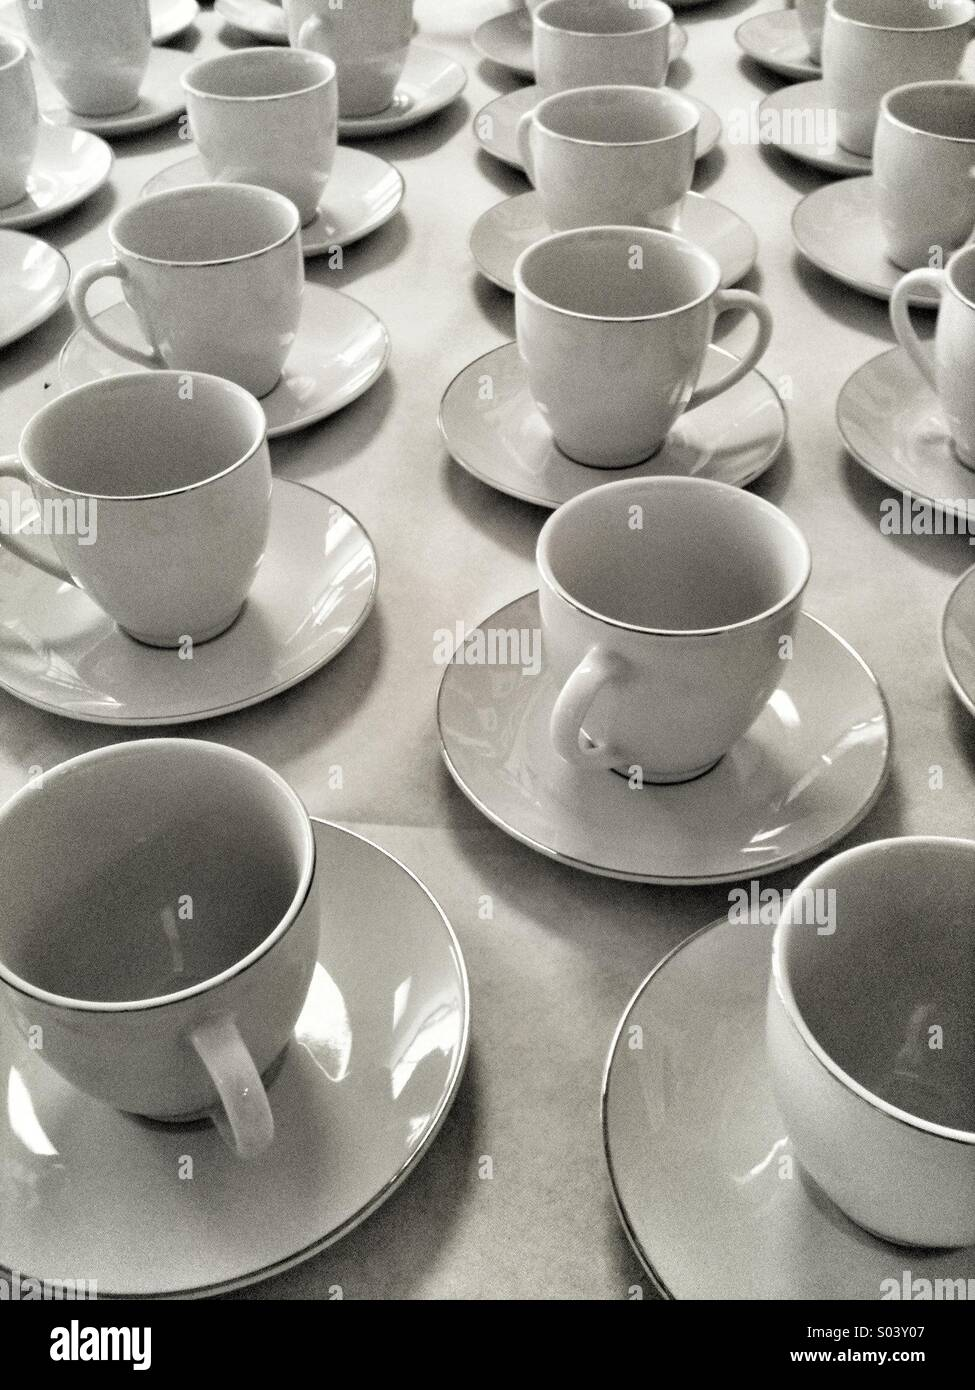 Cups and saucers. - Stock Image